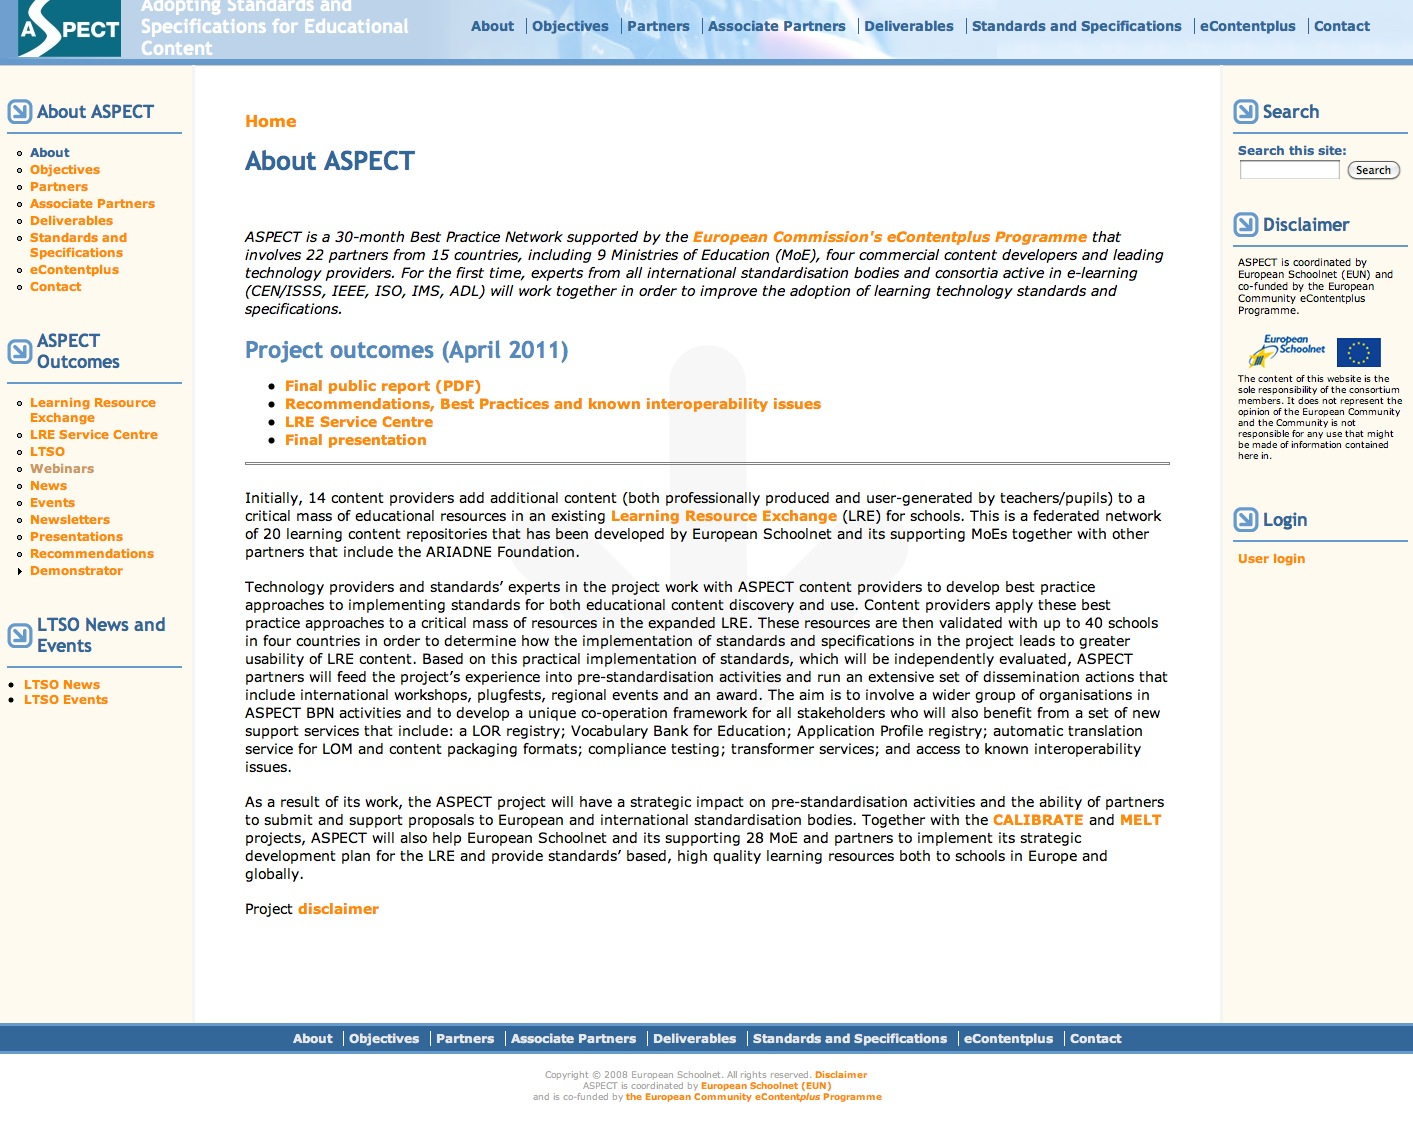 ASPECT: Adopting Standards and Specifications for Educational Content | Recurso educativo 39242